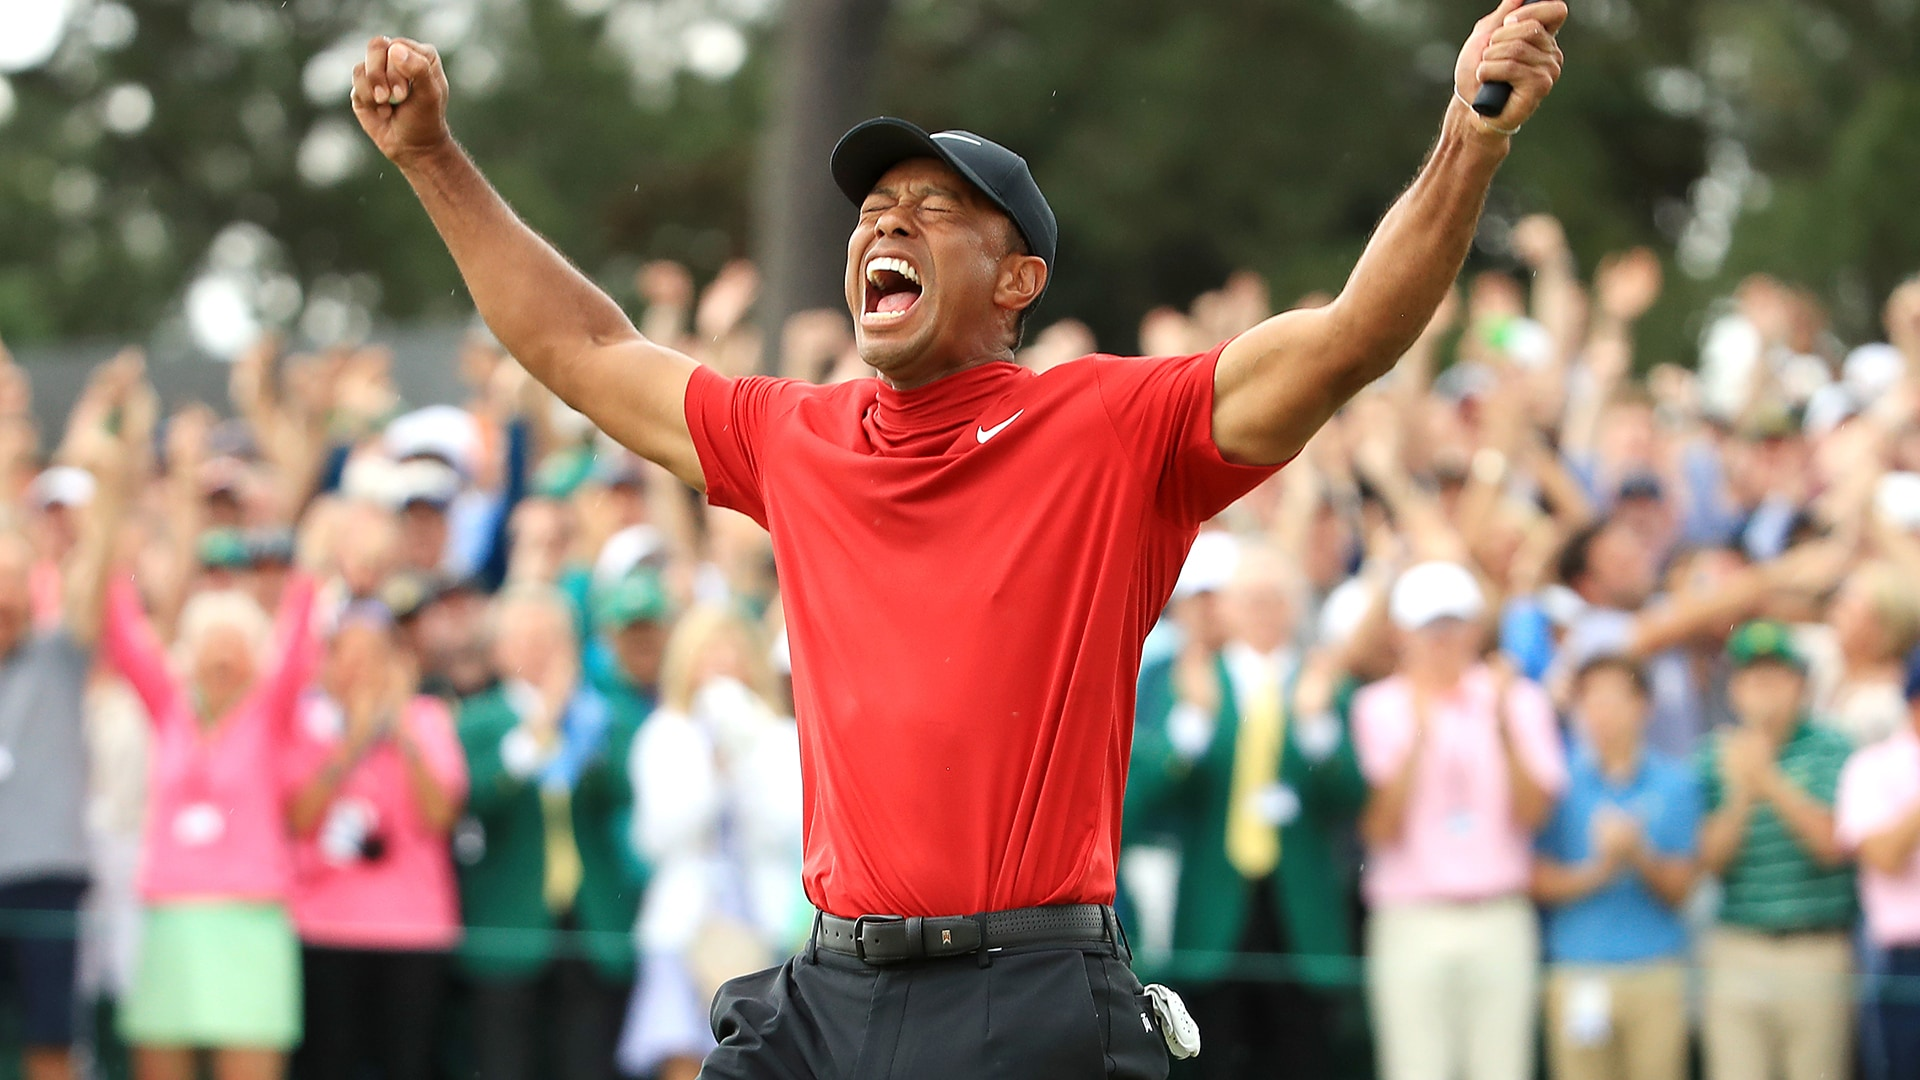 tiger woods wins 15th major championship at 2019 masters